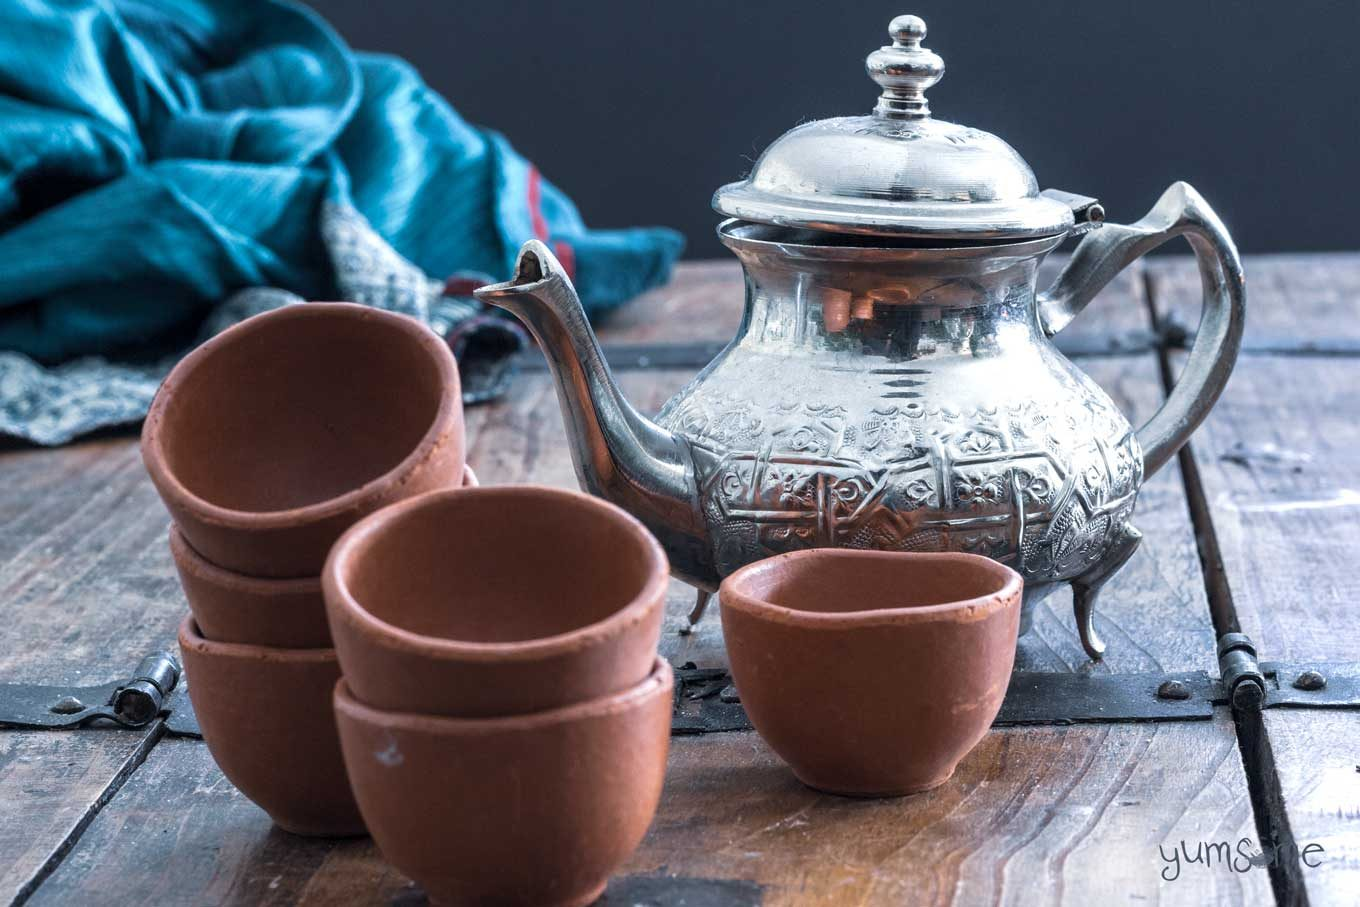 Some small masala chai cups and a silver tea pot on a wooden table, with some bright blue and silver cloth in the background.